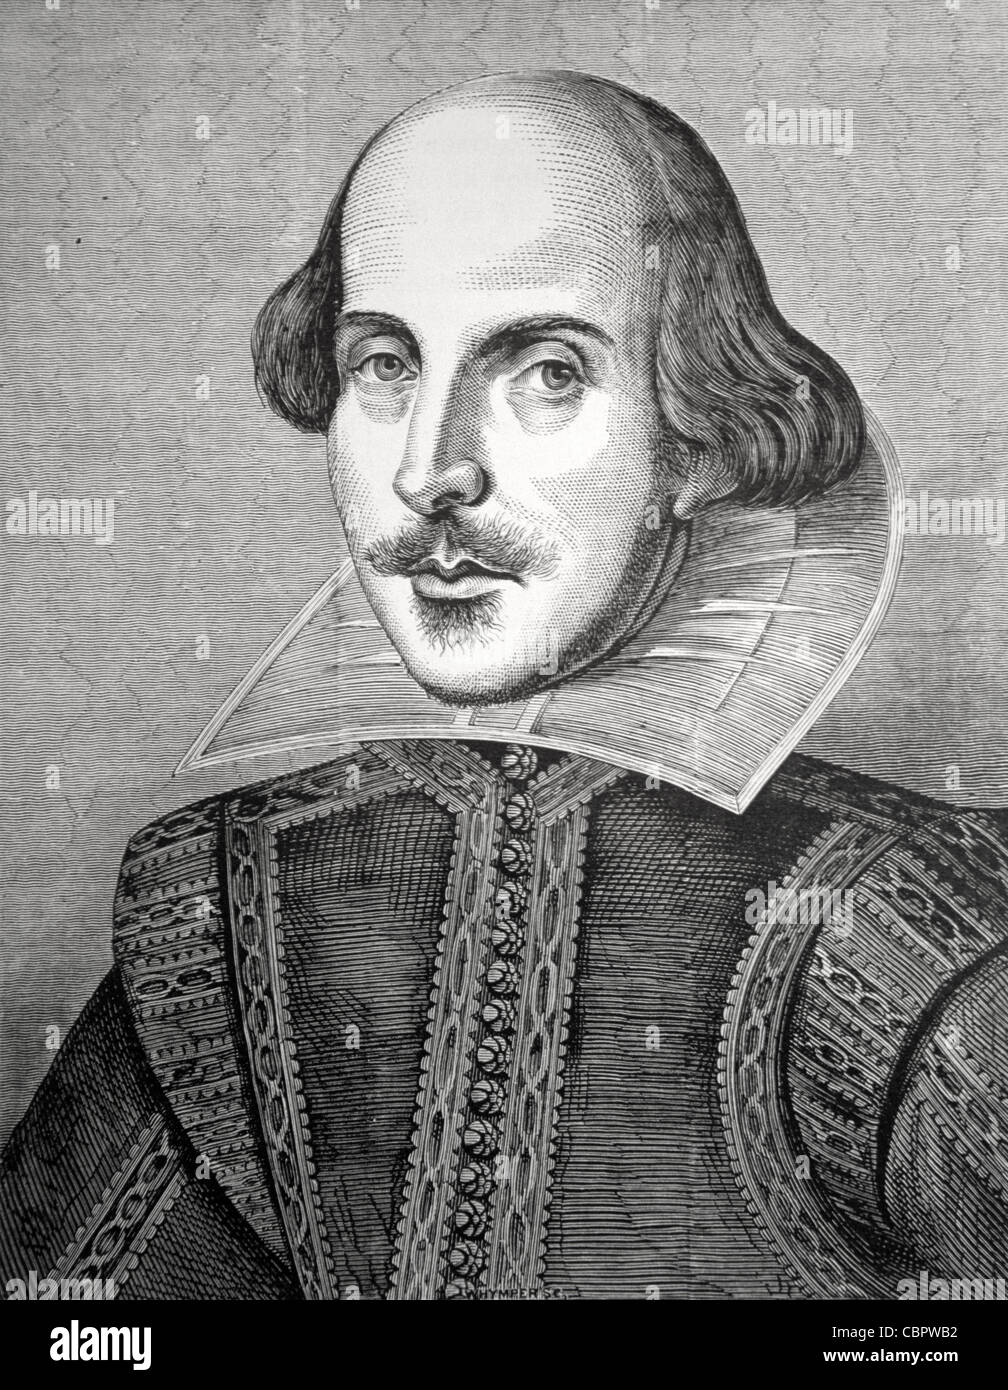 Shakespeare Portrait Stockfotos & Shakespeare Portrait Bilder - Alamy